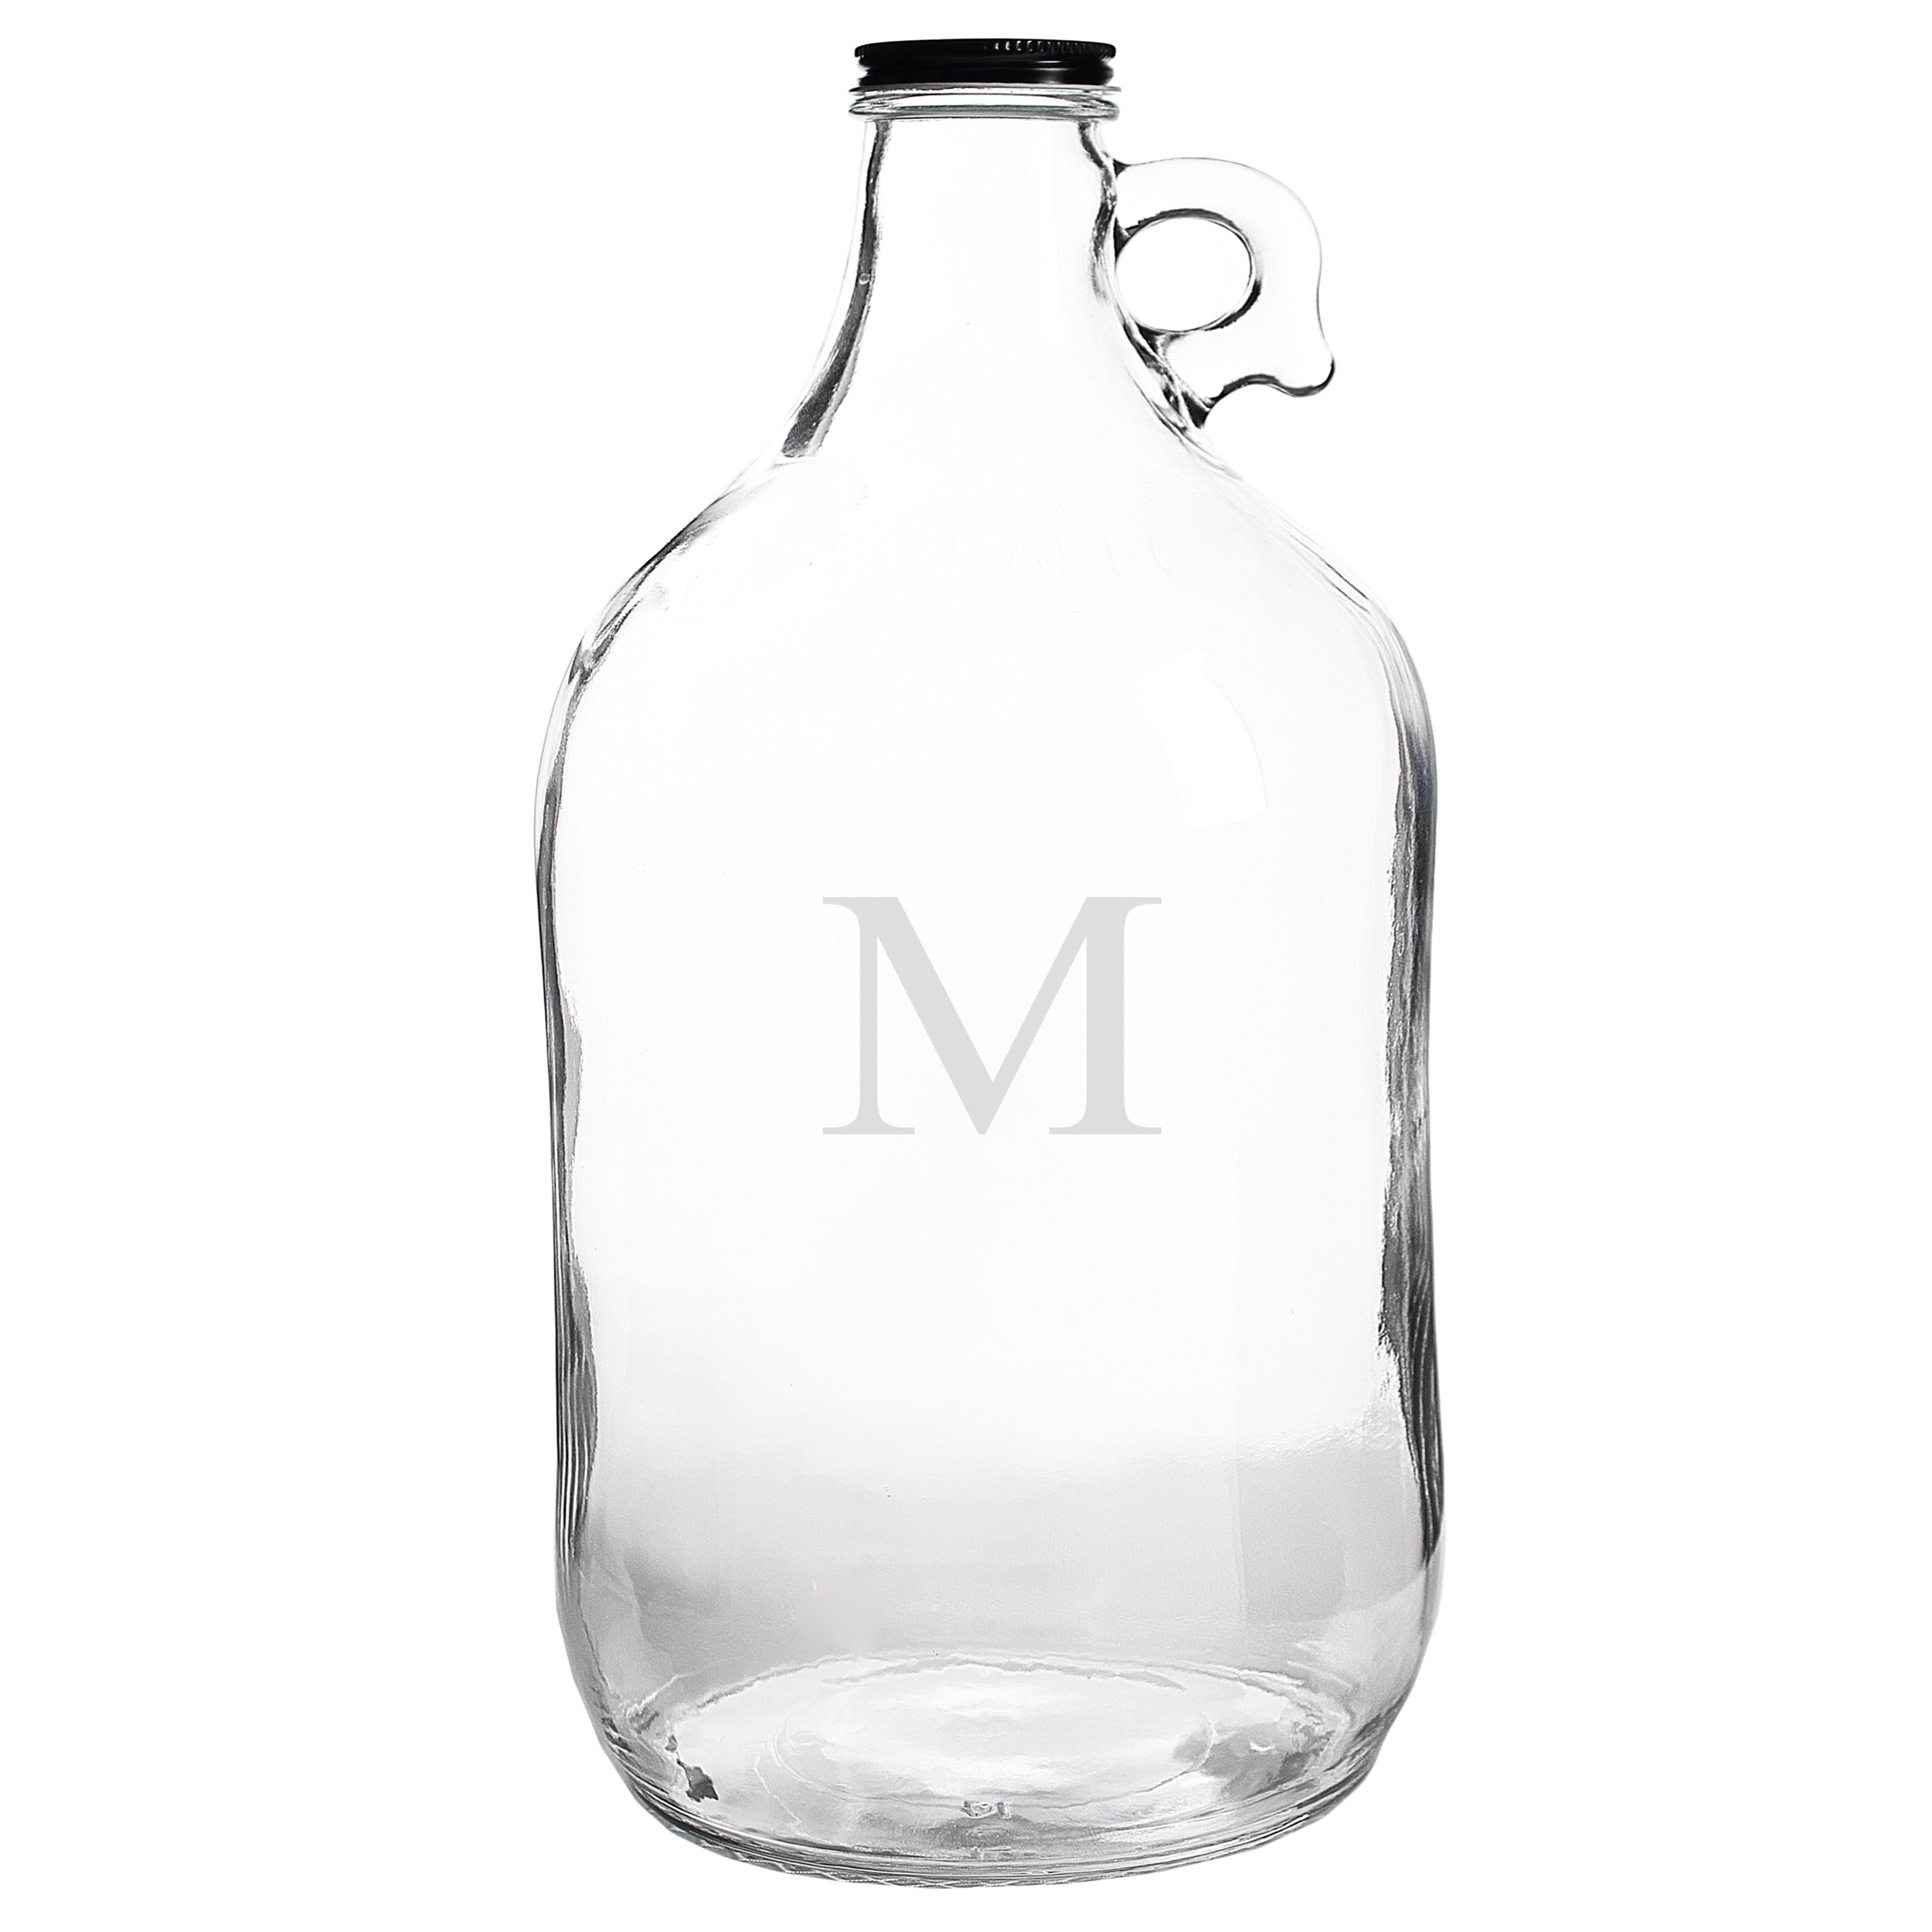 Cathy's Concepts Personalized Craft Beer Growler, Letter M